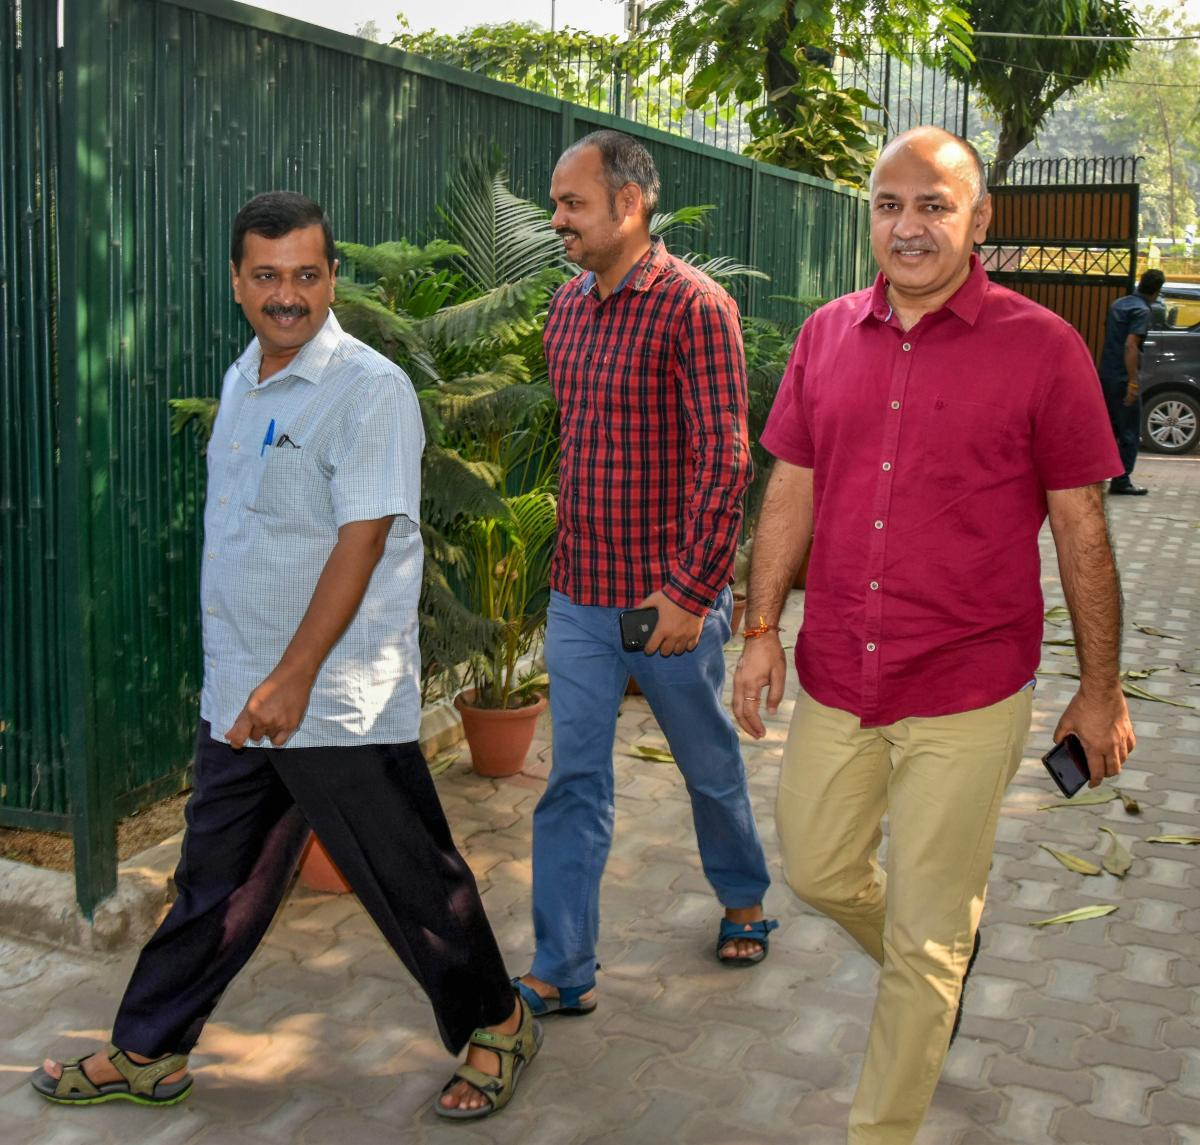 Delhi Chief Minister Arvind Kejriwal (C) and Deputy CM Manish Sisodia (R) arrive at latter's residence, in New Delhi on Thursday. After Patiala house Court granted bail to Kejriwal and Sisodia in the Chief Secretary Anshu Prakash assault case. PTI